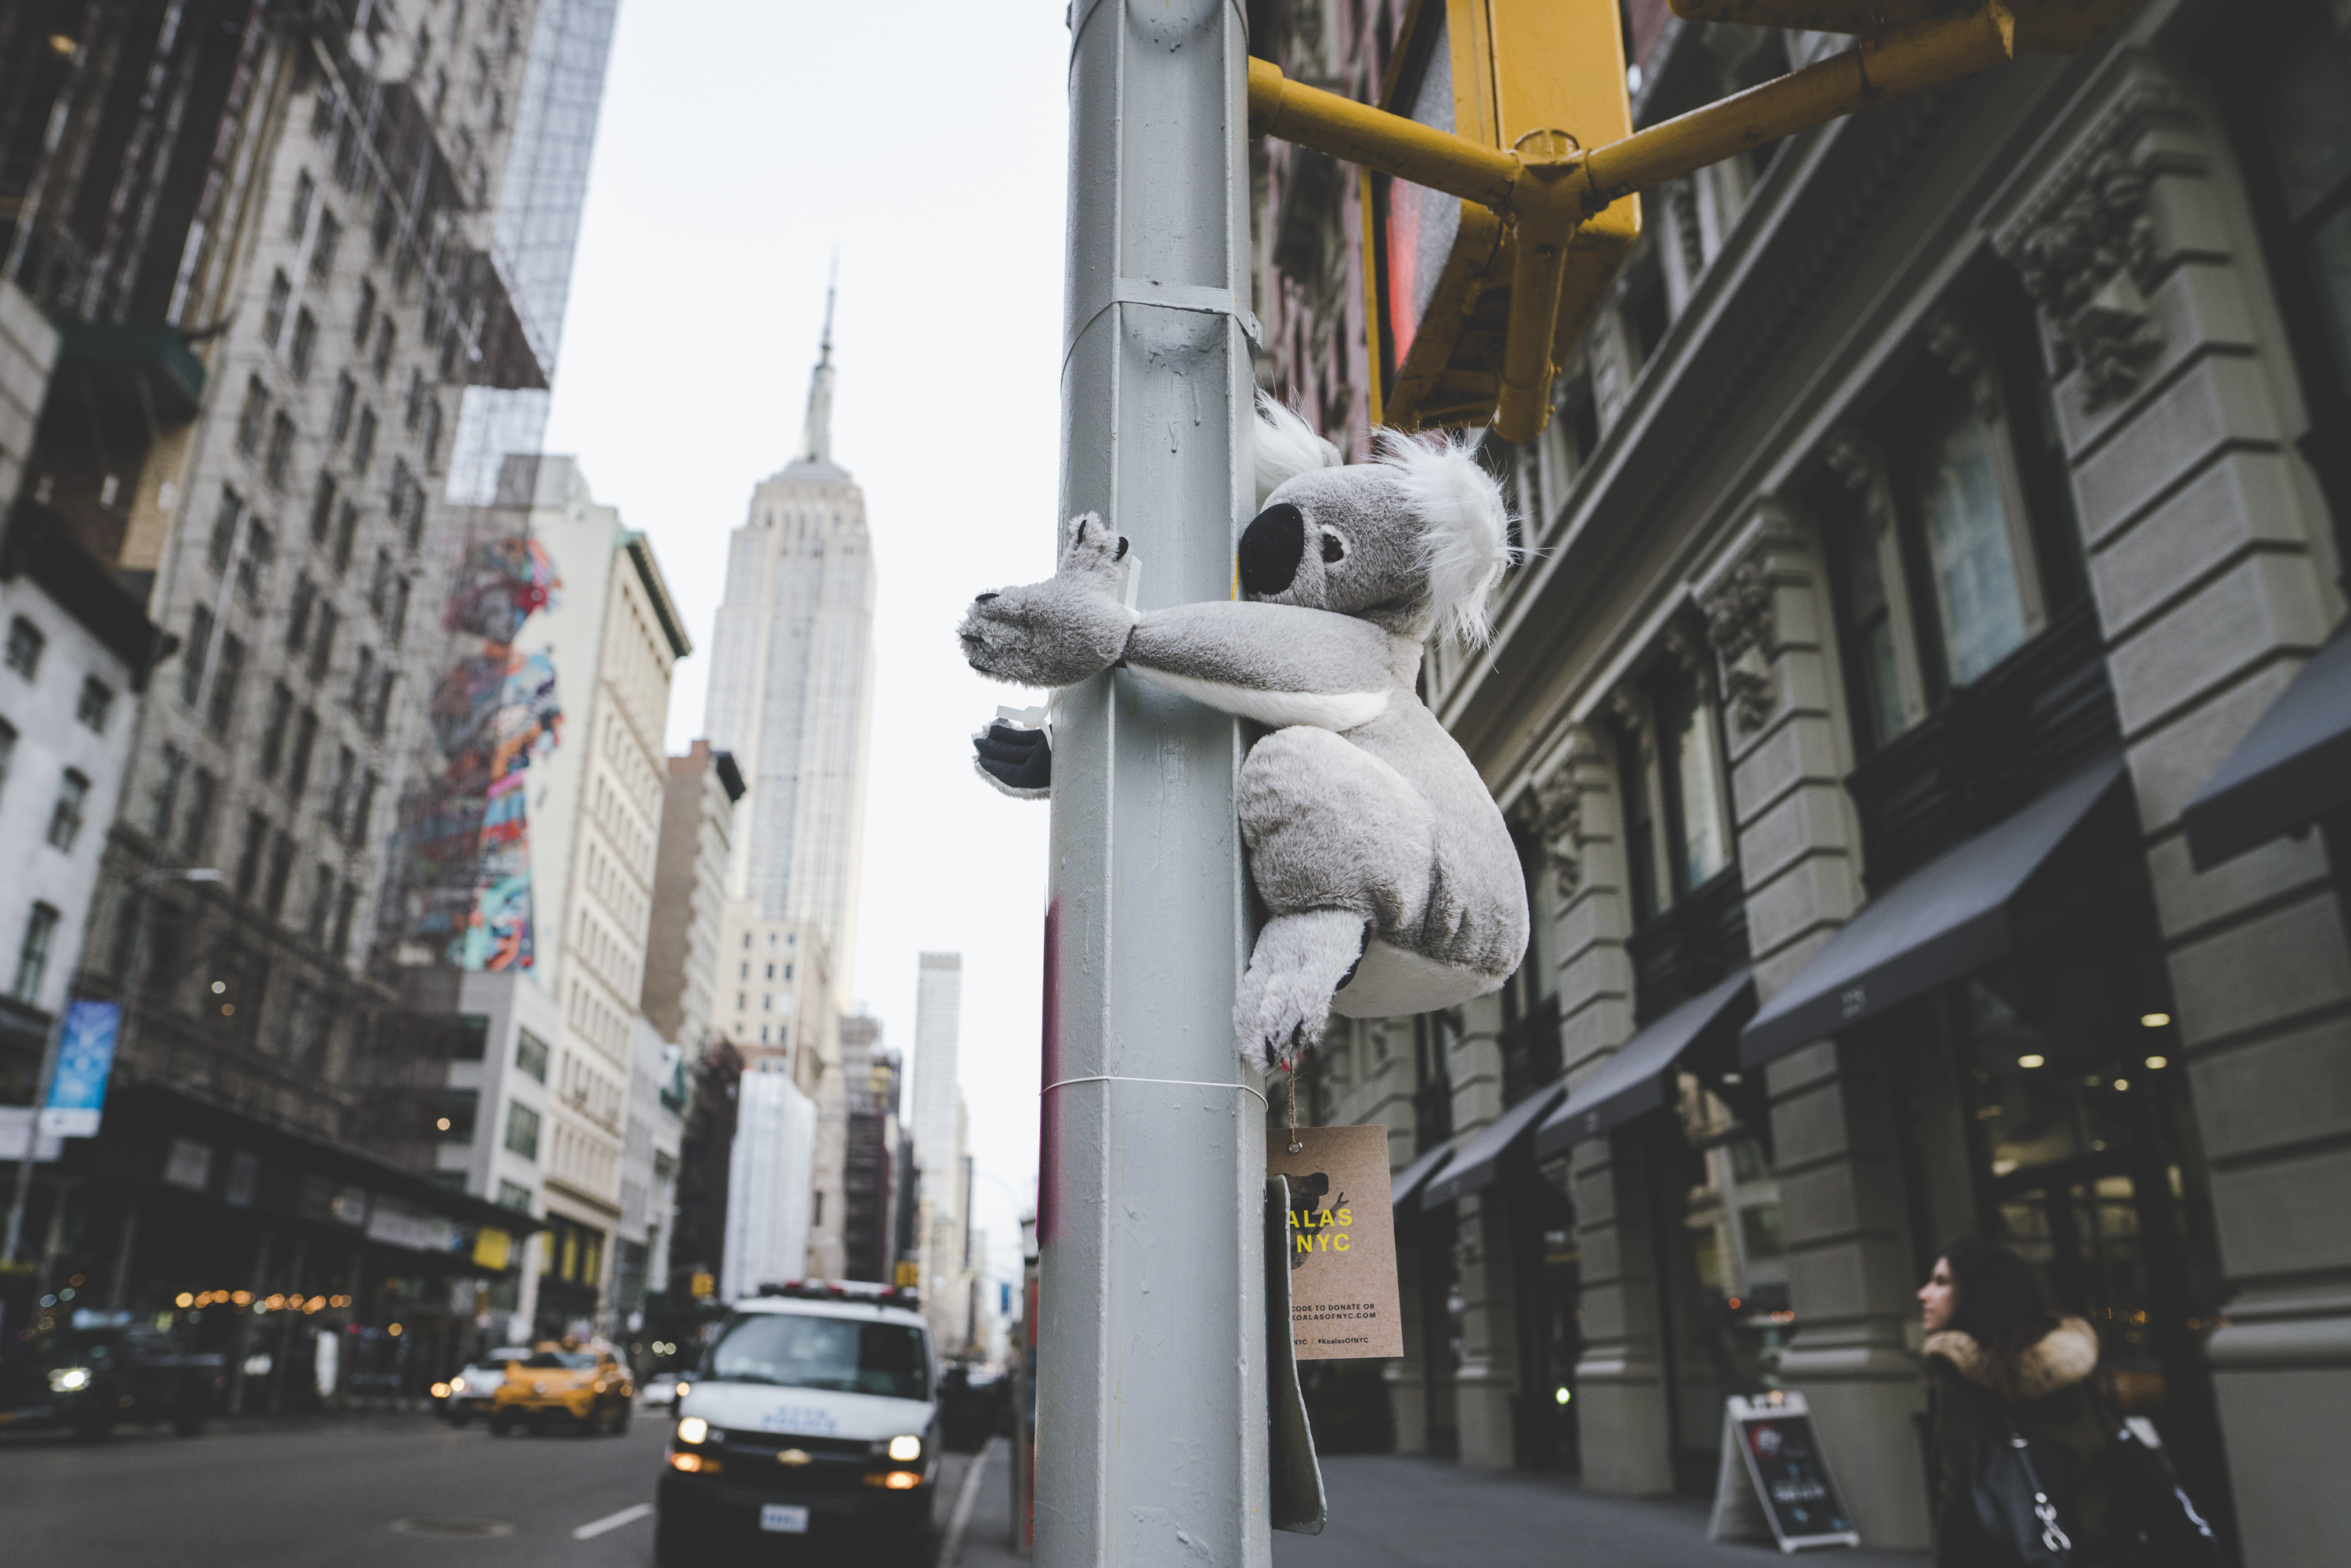 Cummins&Partners NYC takes action to help furry friends in Australia with @koalasofnyc